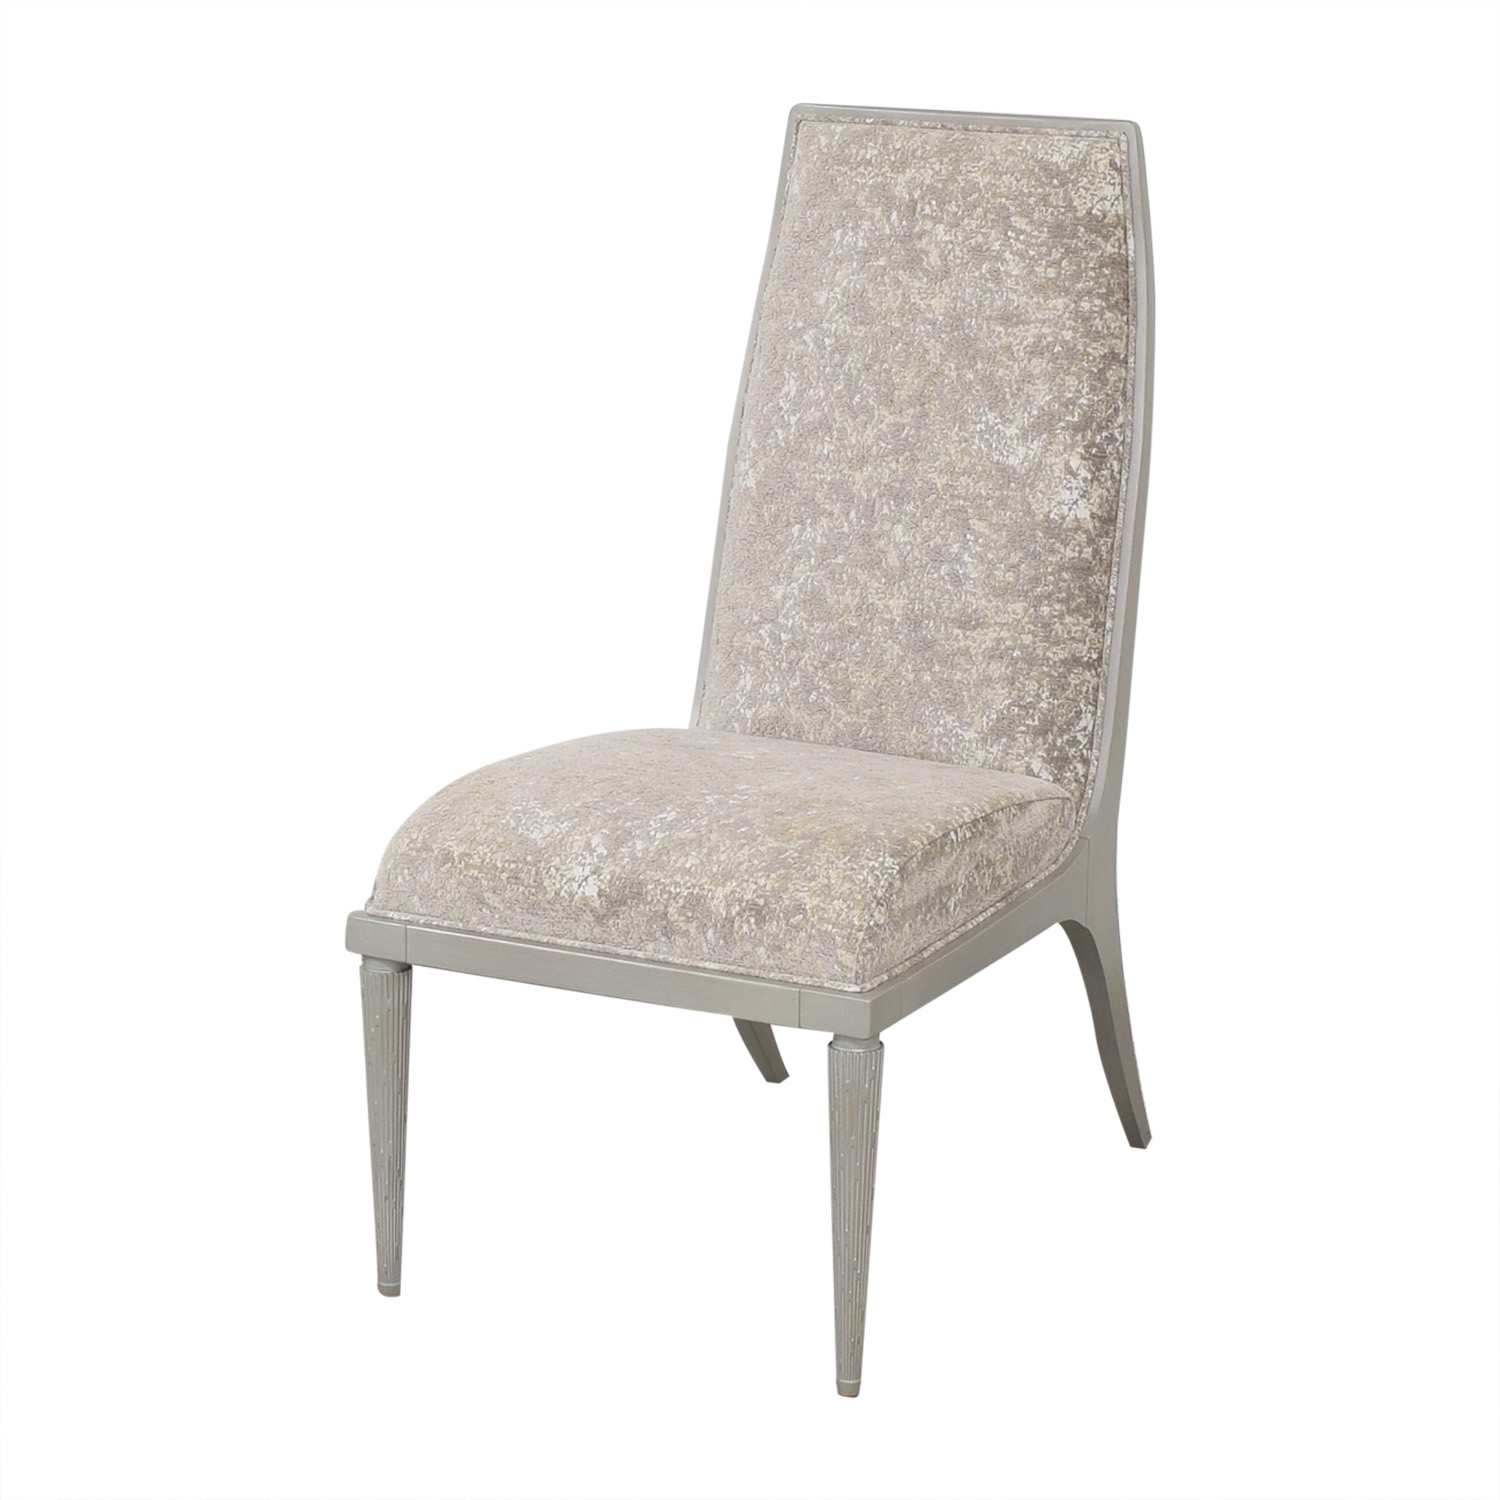 Baker Furniture Jasper Side Dining Chairs / Chairs